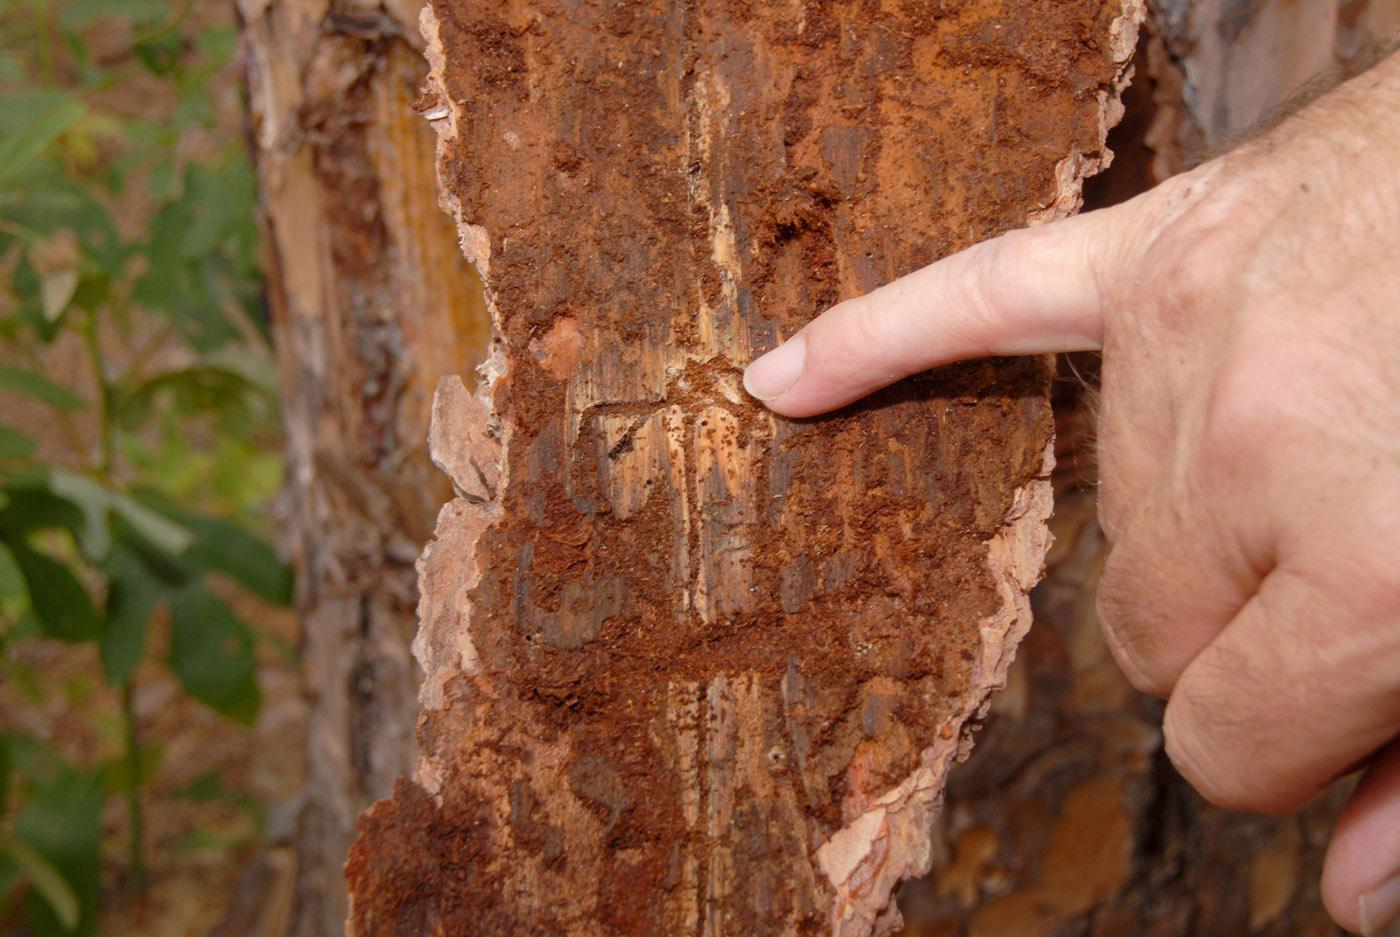 Pine bark beetles have attacked this stressed pine tree, burrowing under the bark and killing the tree. (file photo)